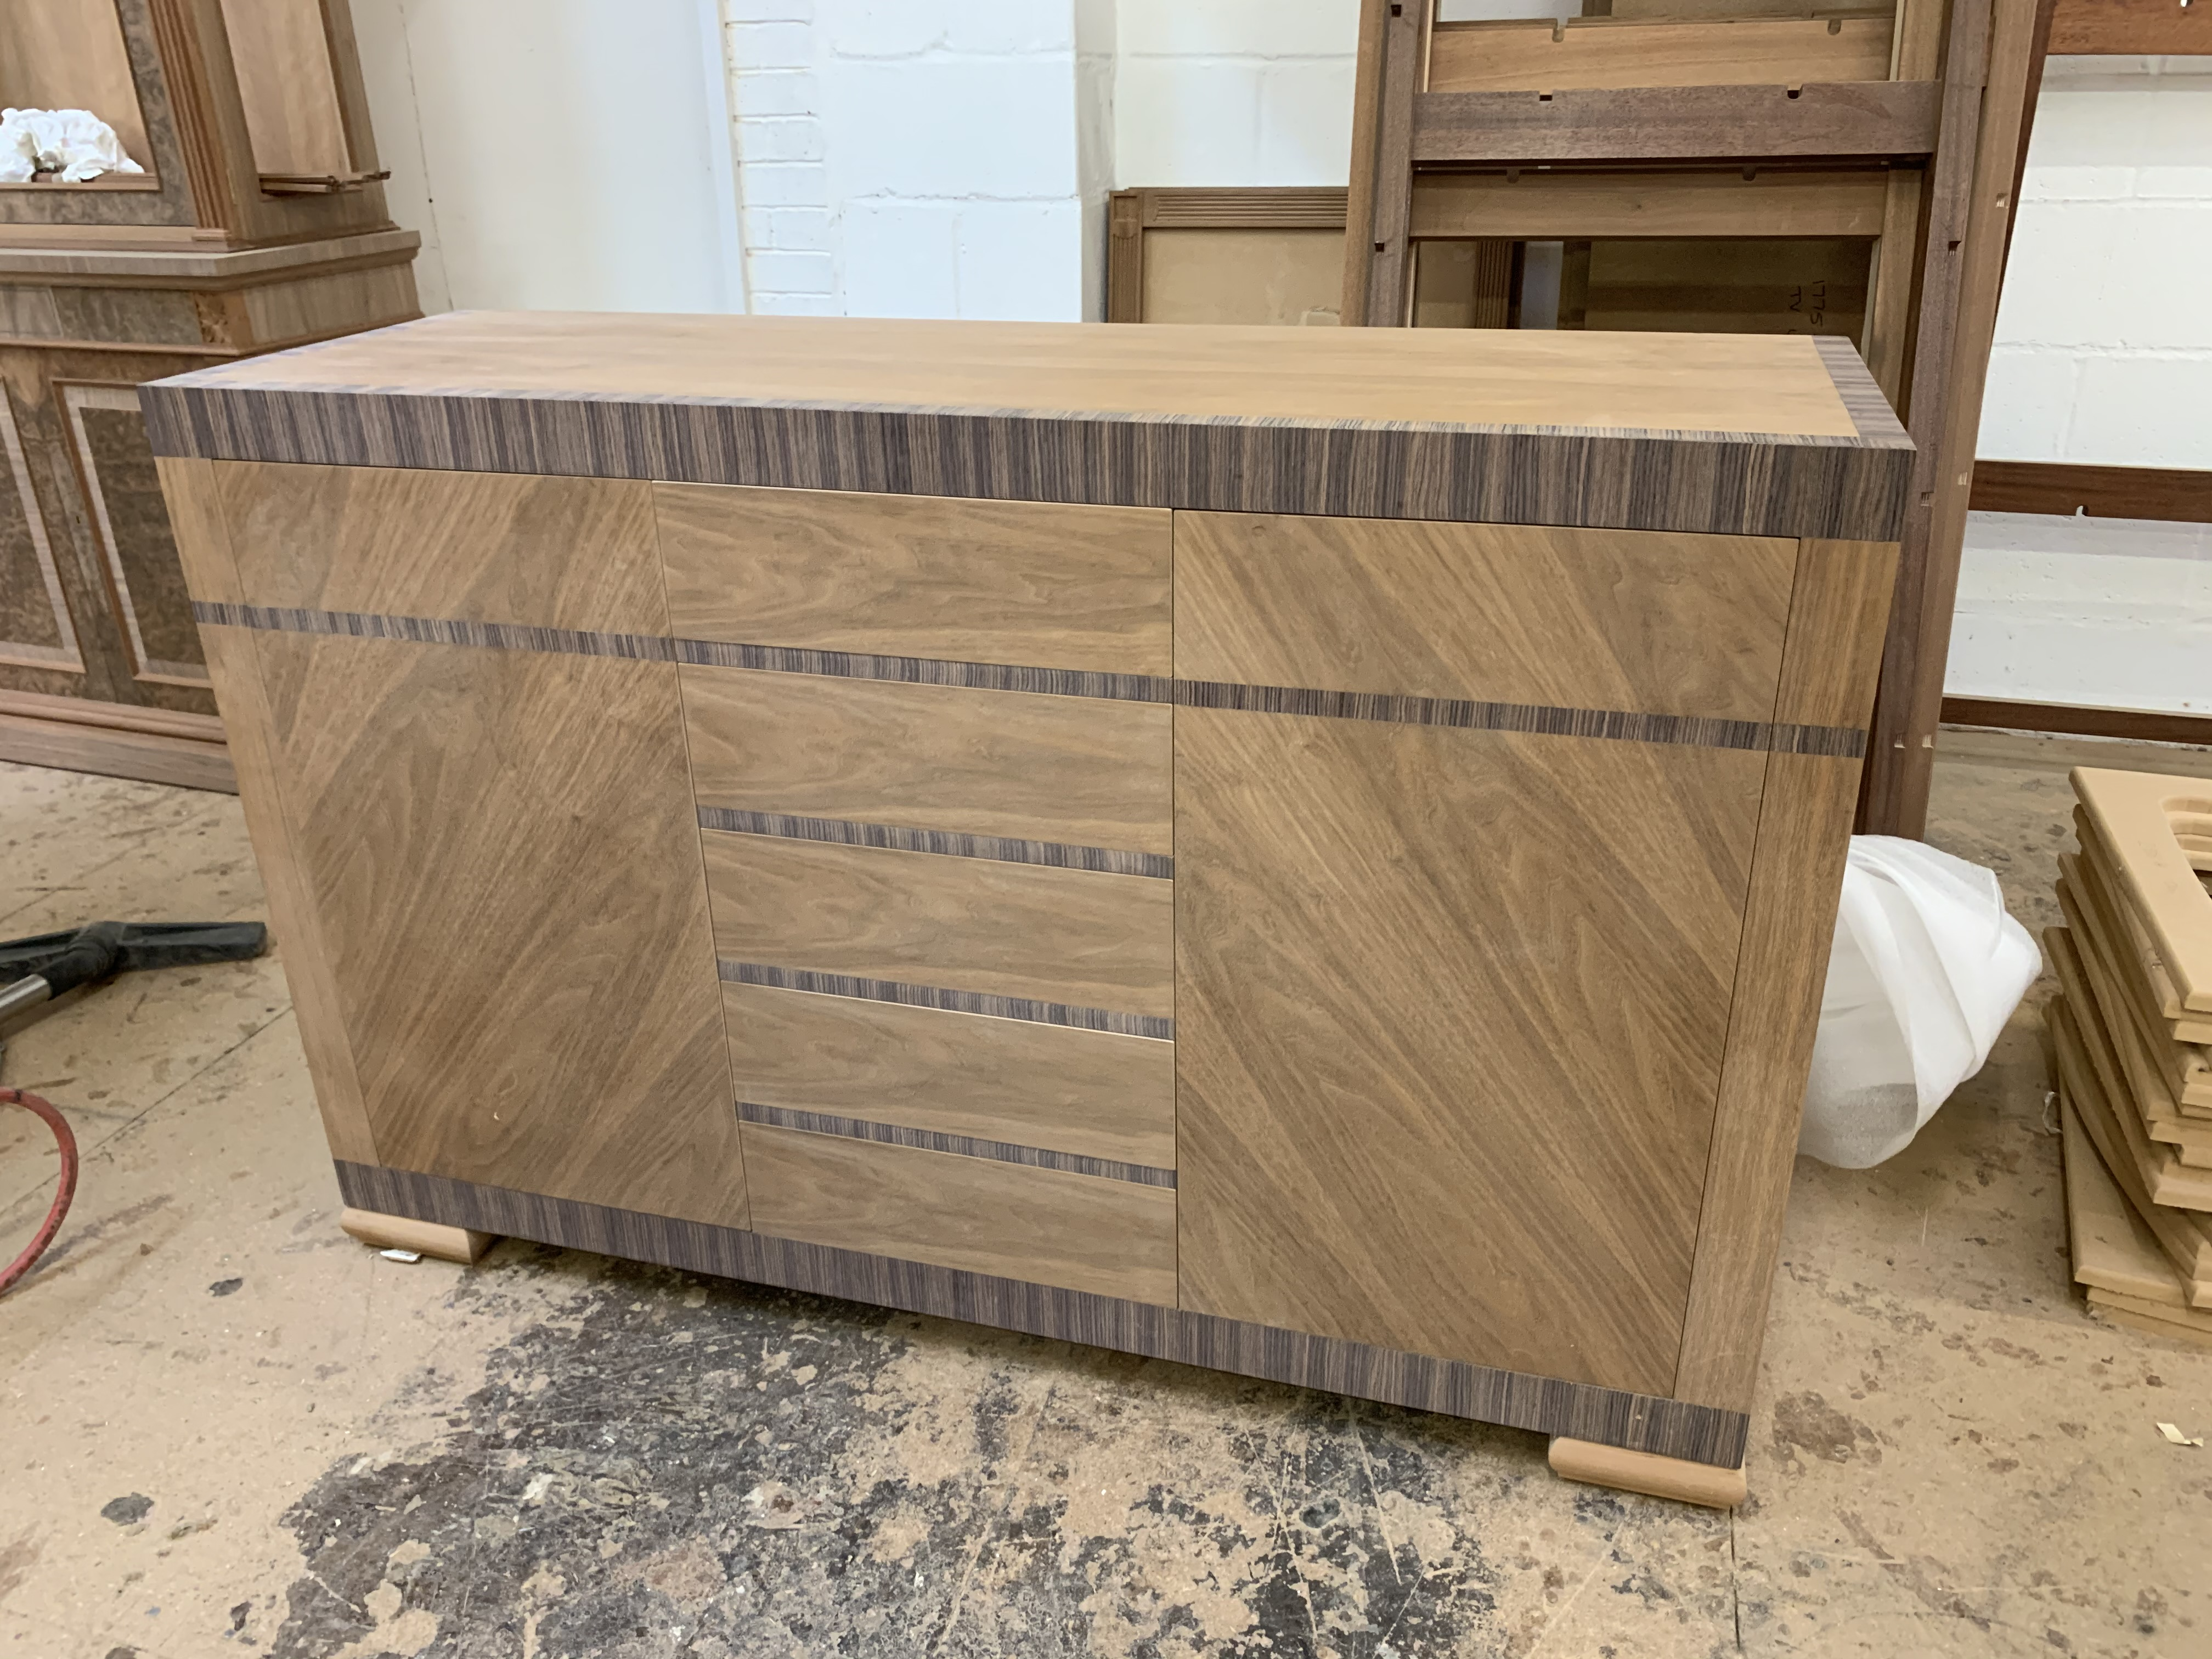 Lot 58 - Walnut finish Sideboard, a contemporary one-off prototype design with push-open cupboards, length